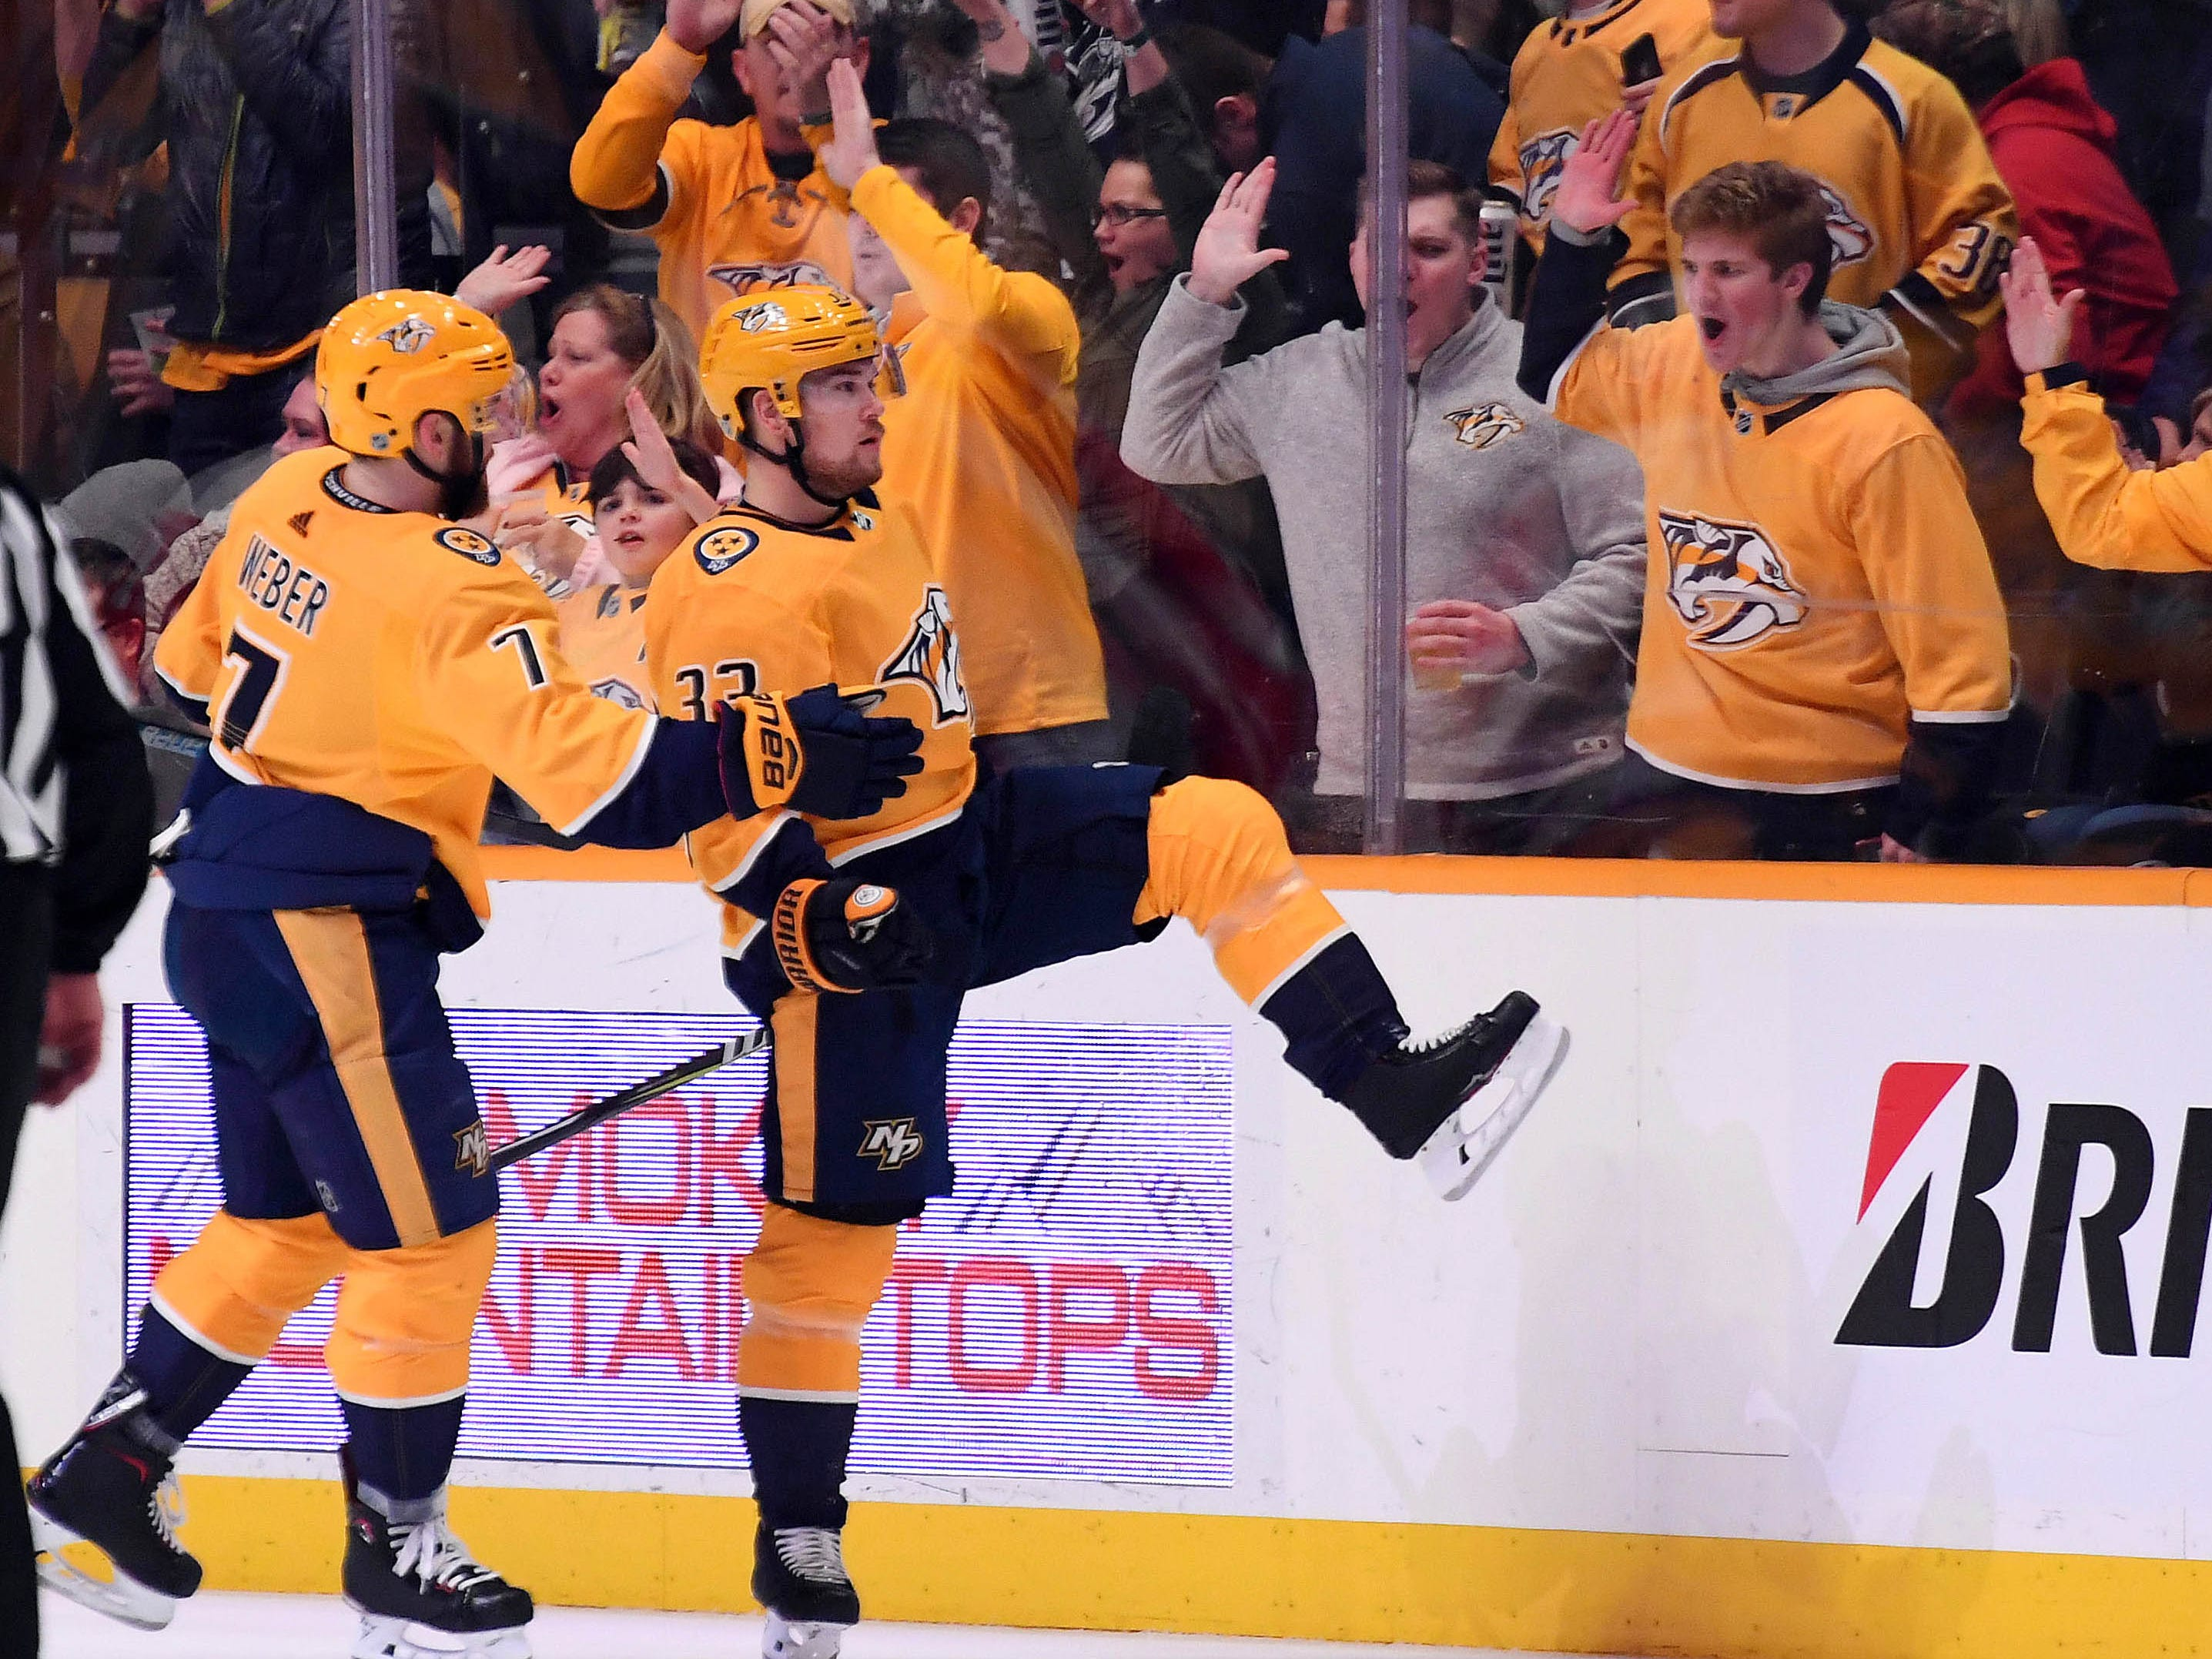 Nashville Predators right wing Viktor Arvidsson (33) celebrates after a goal during the second period against the Detroit Red Wings at Bridgestone Arena.